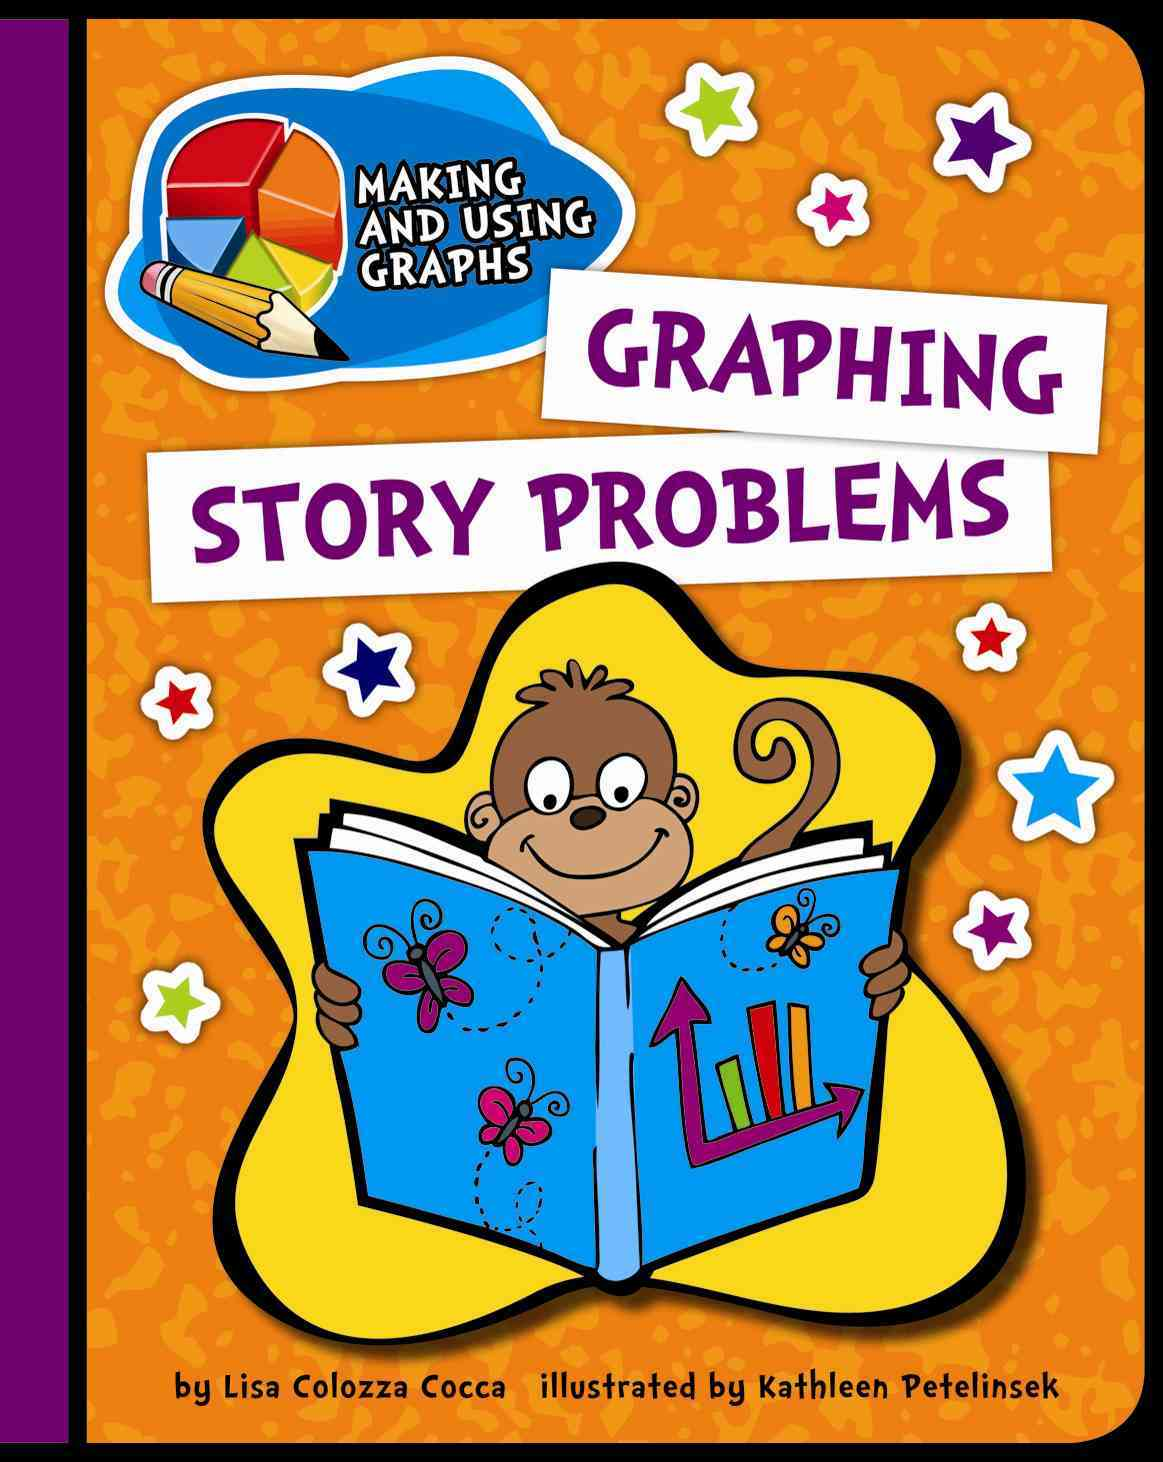 Graphing Story Problems By Cocca, Lisa Colozza